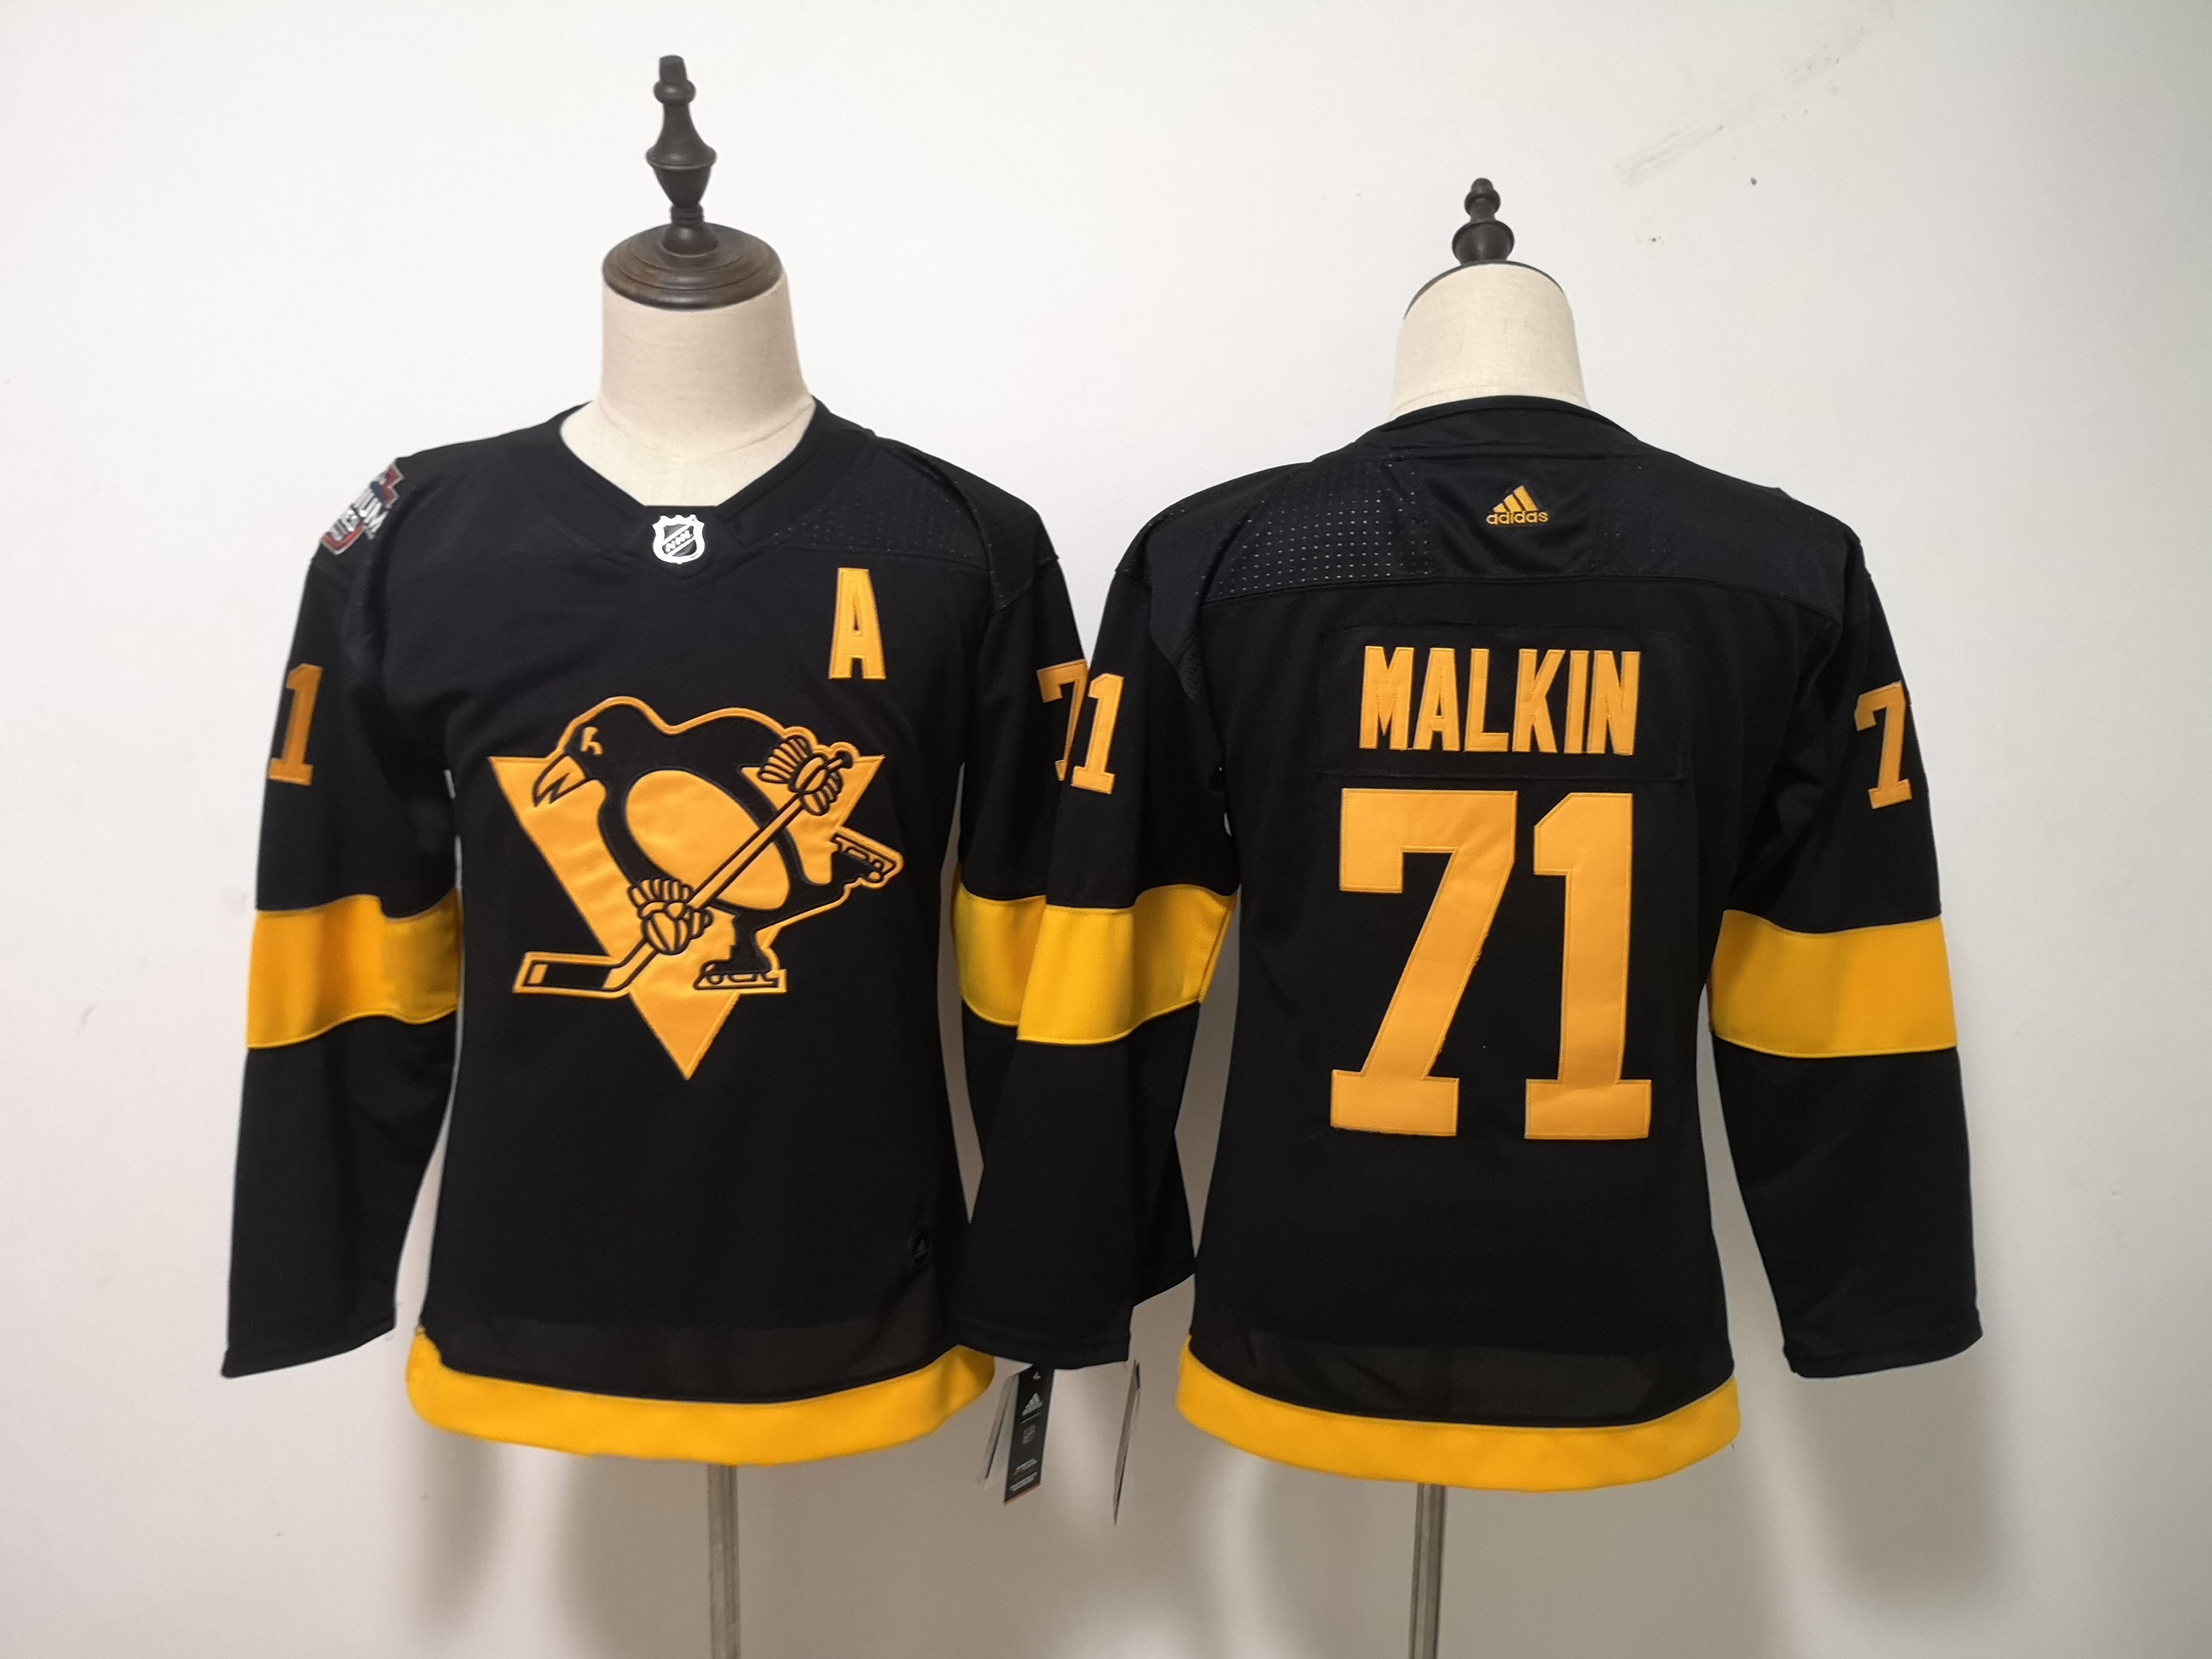 Penguins 71 Evgeni Malkin Black Youth 2019 NHL Stadium Series Adidas Jersey